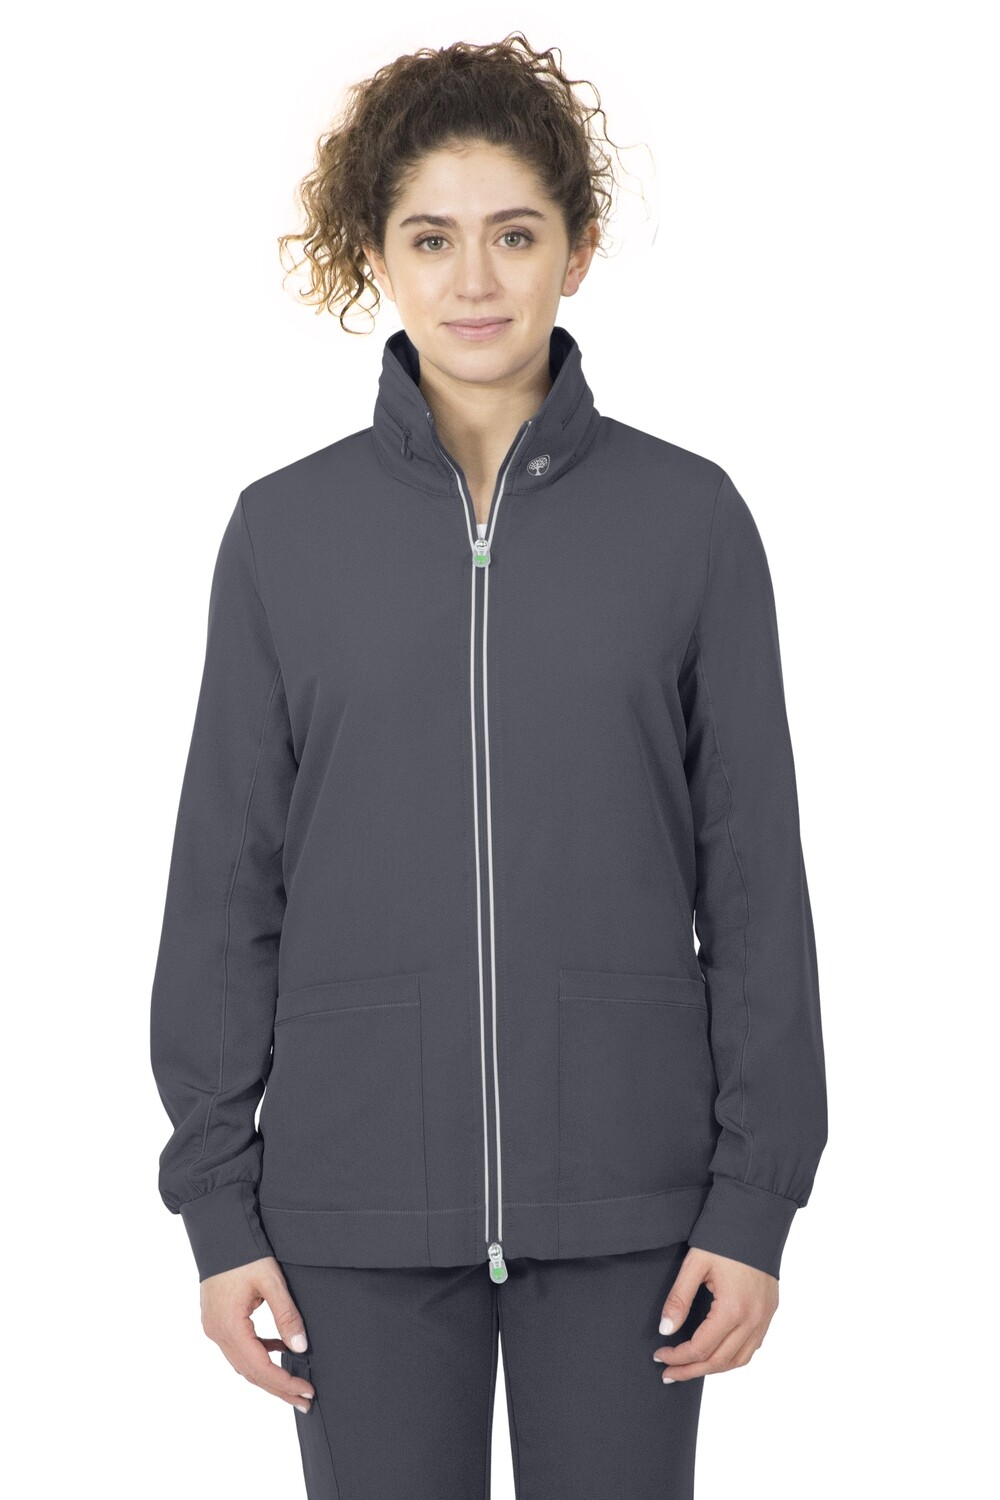 5065 CARRIE JACKET - PL XS PEWTER